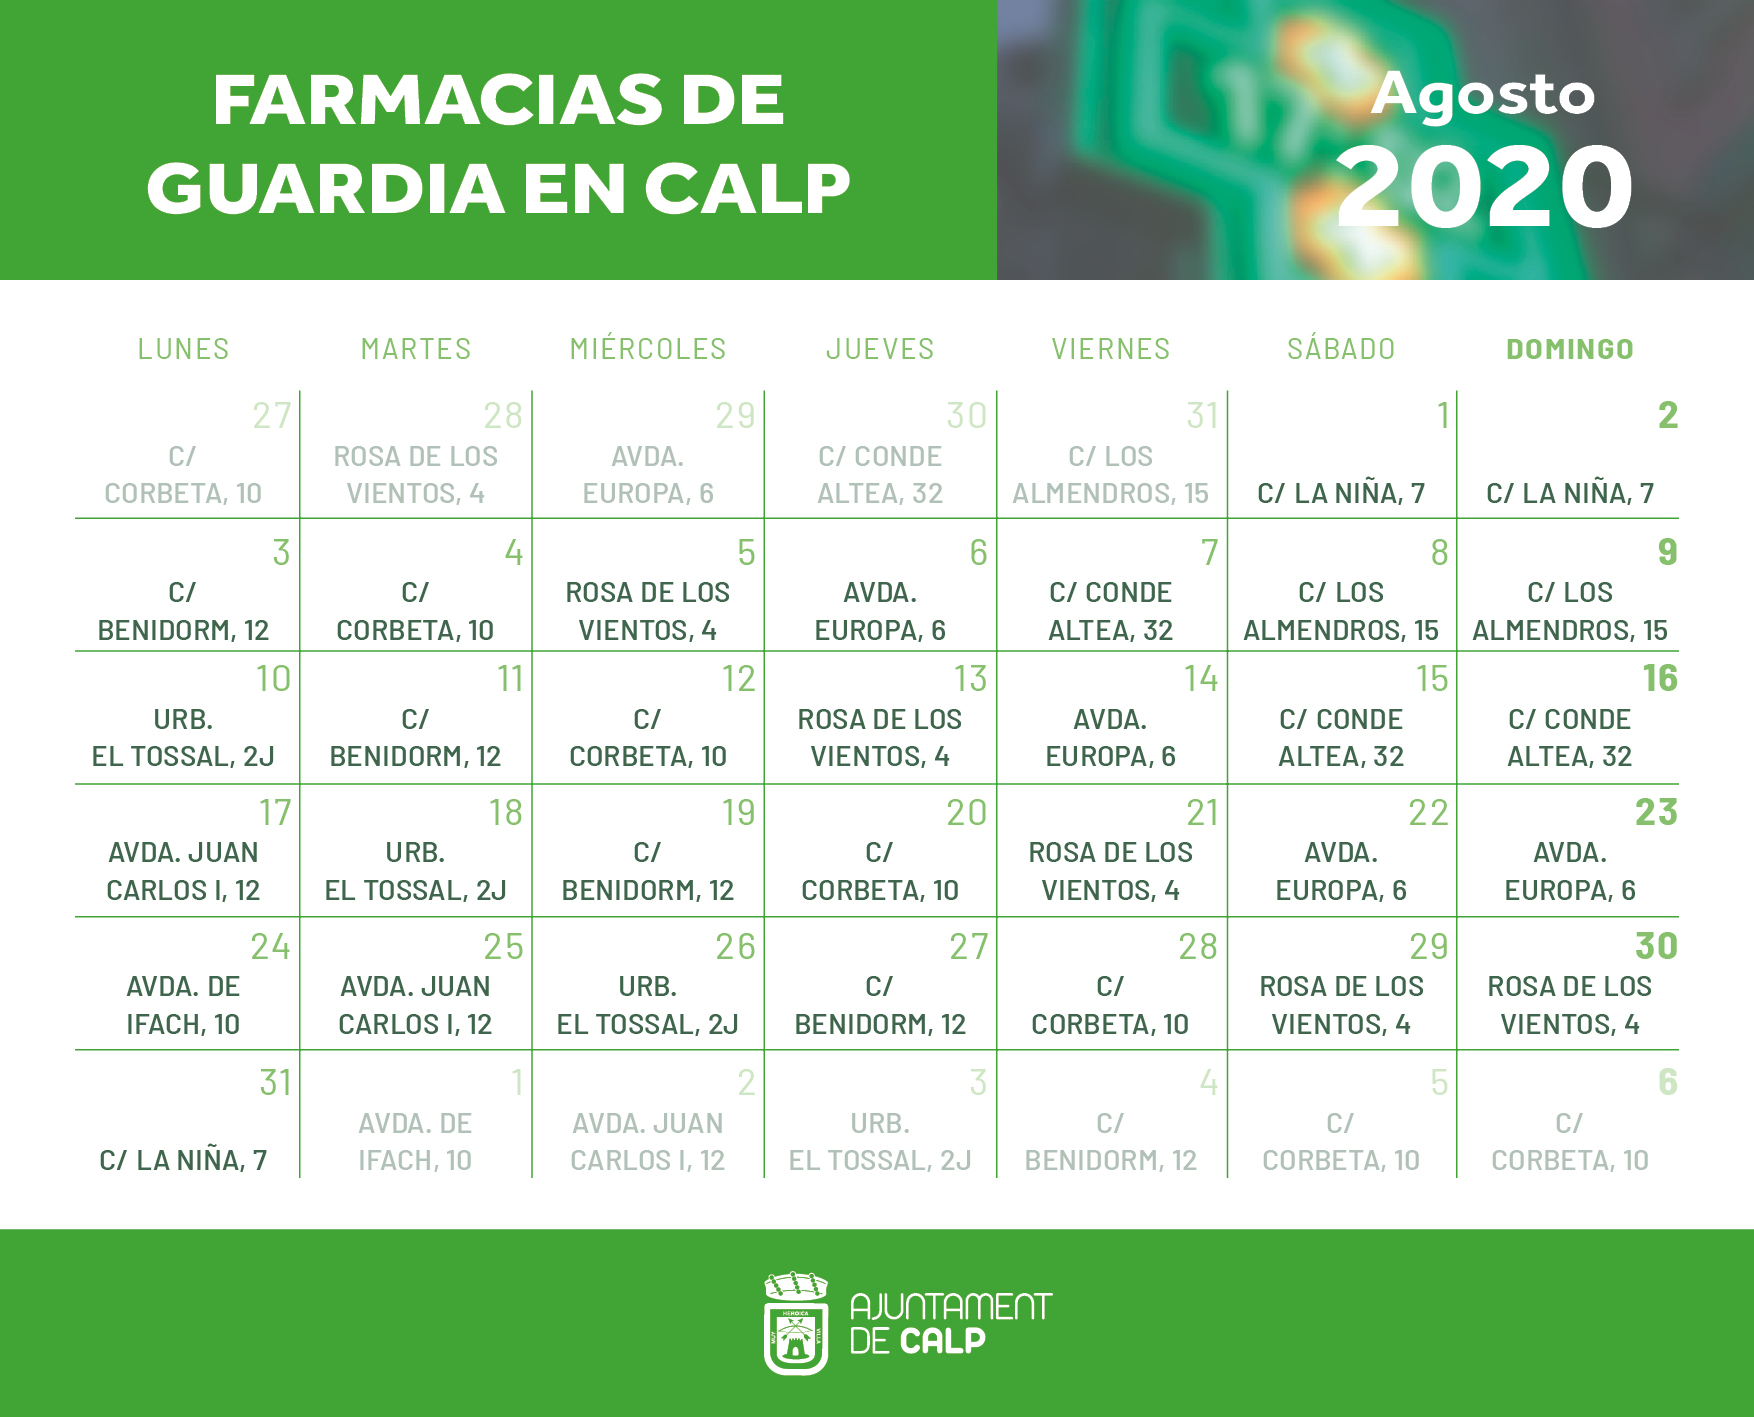 Farmacias Guardia Agosto 2020